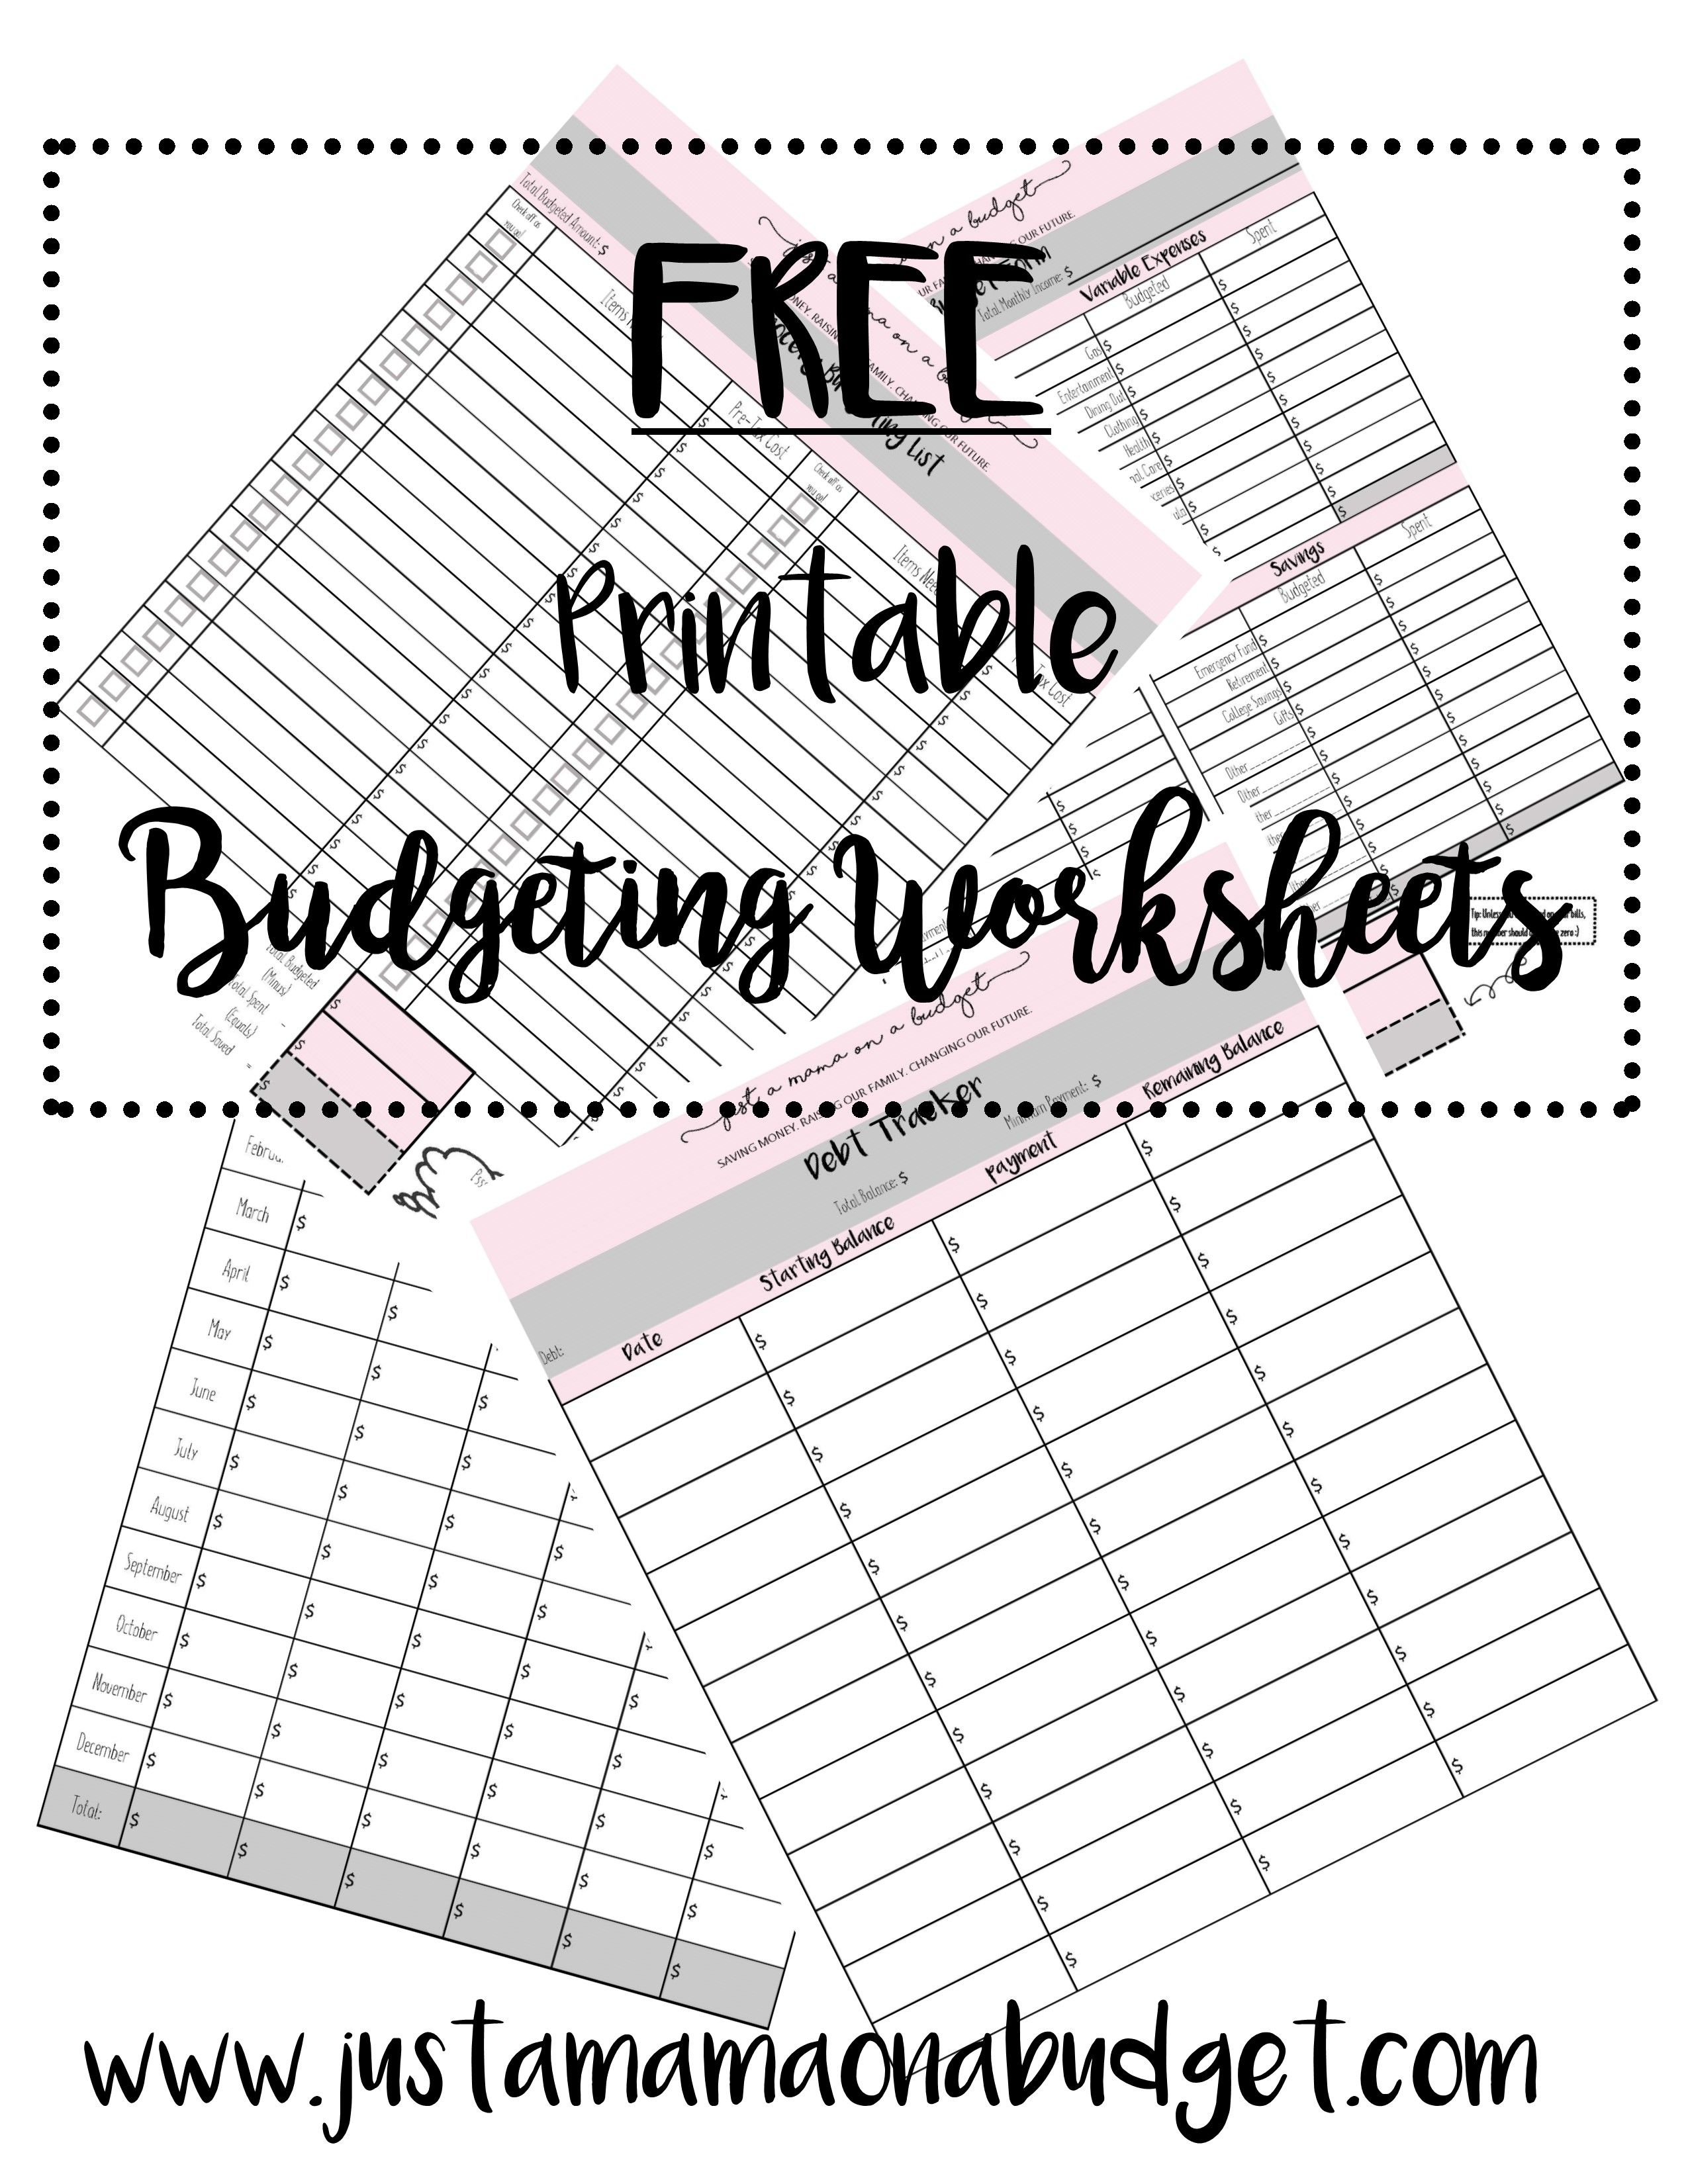 4 Great Budgeting Forms To Help Organize Your Finances On